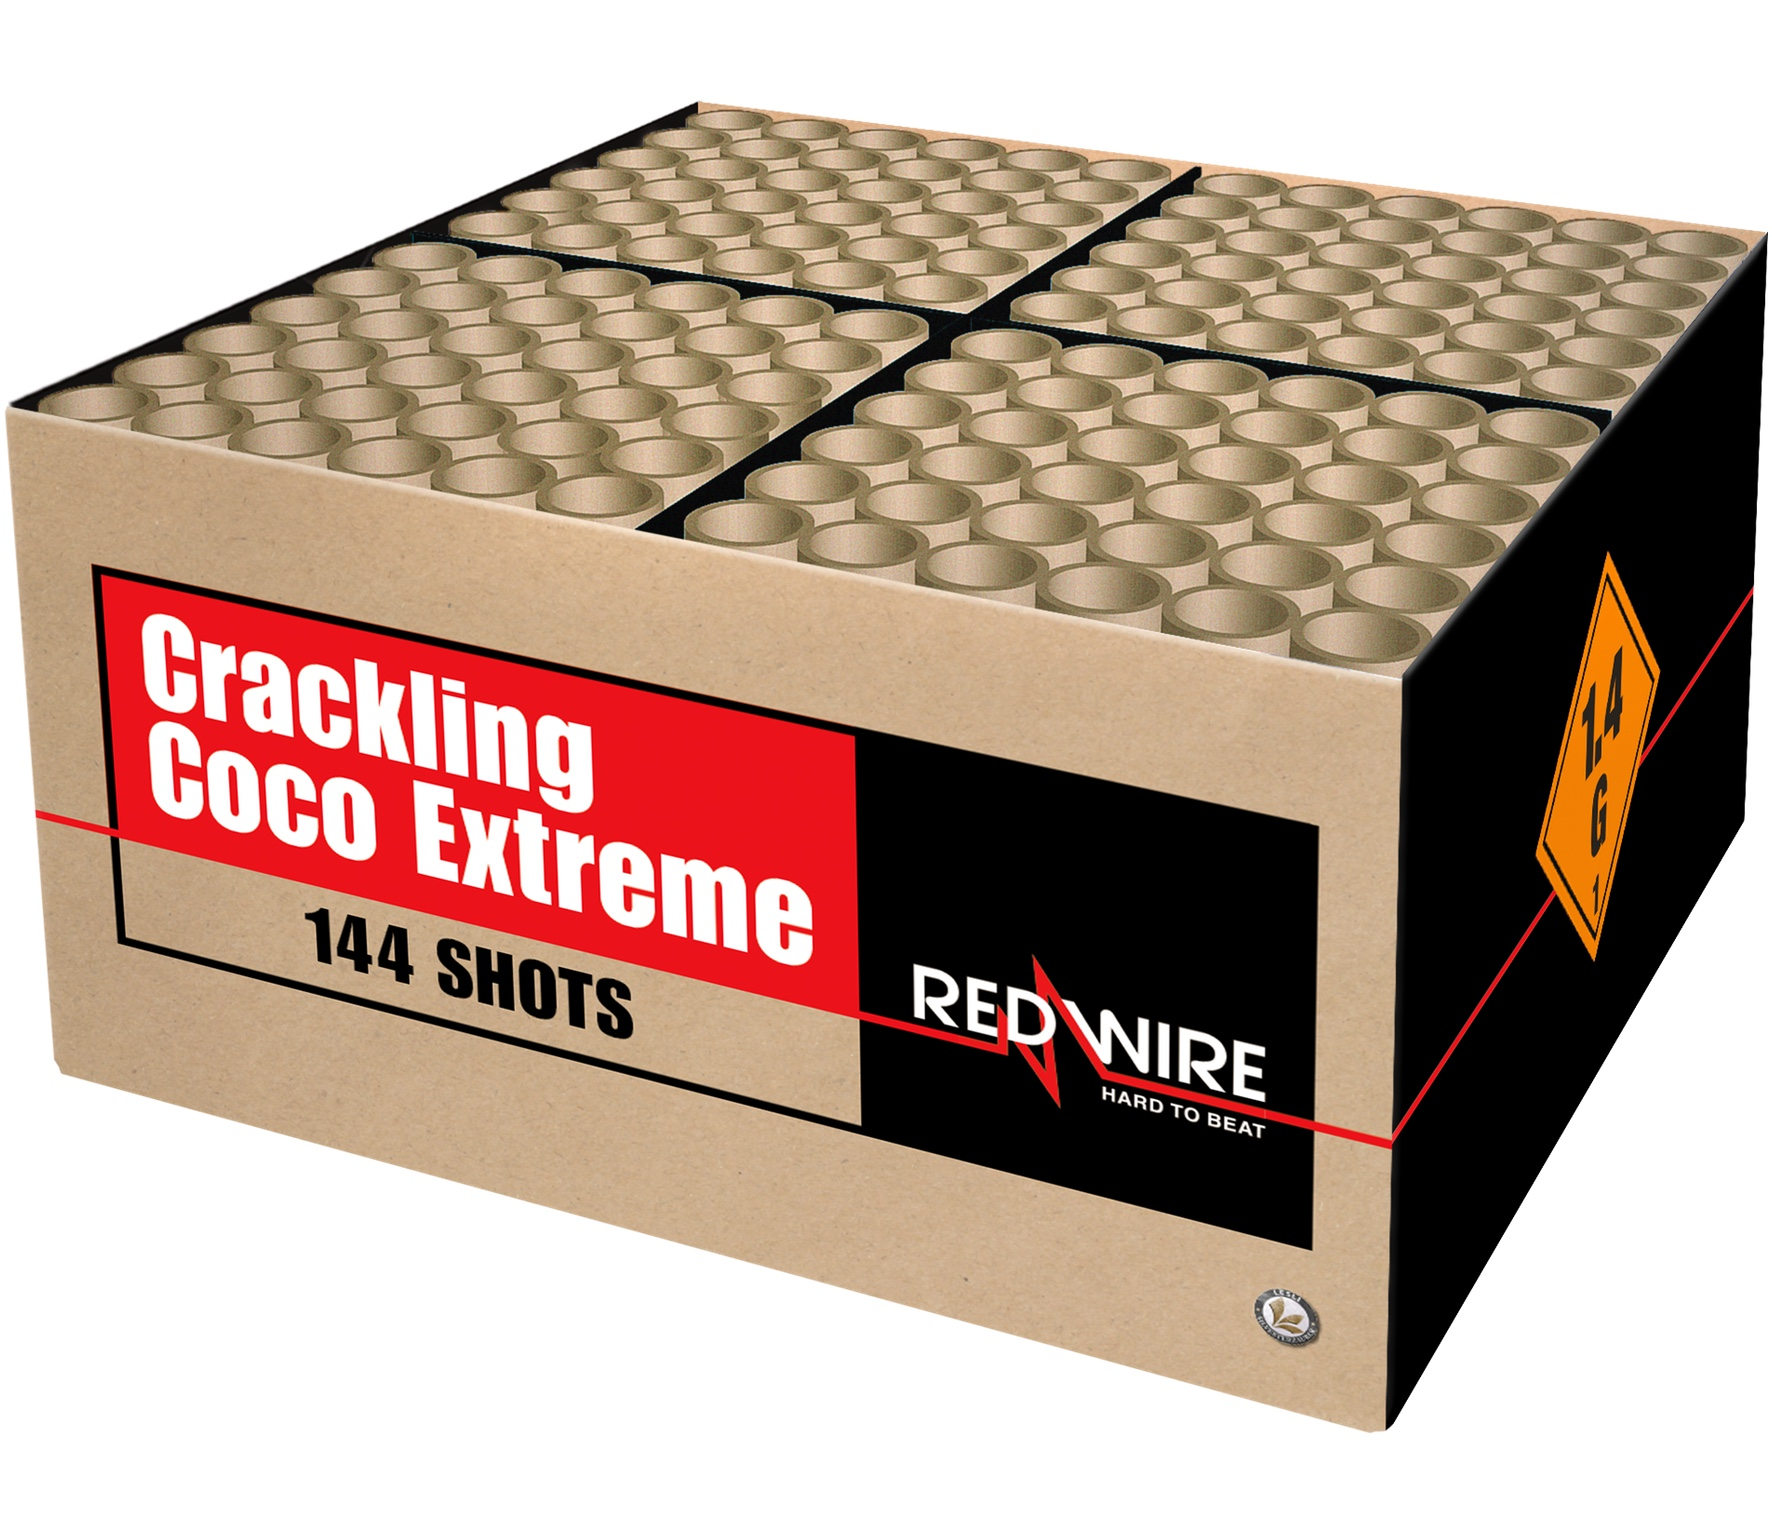 Crackling Coco Extreme 144 schots